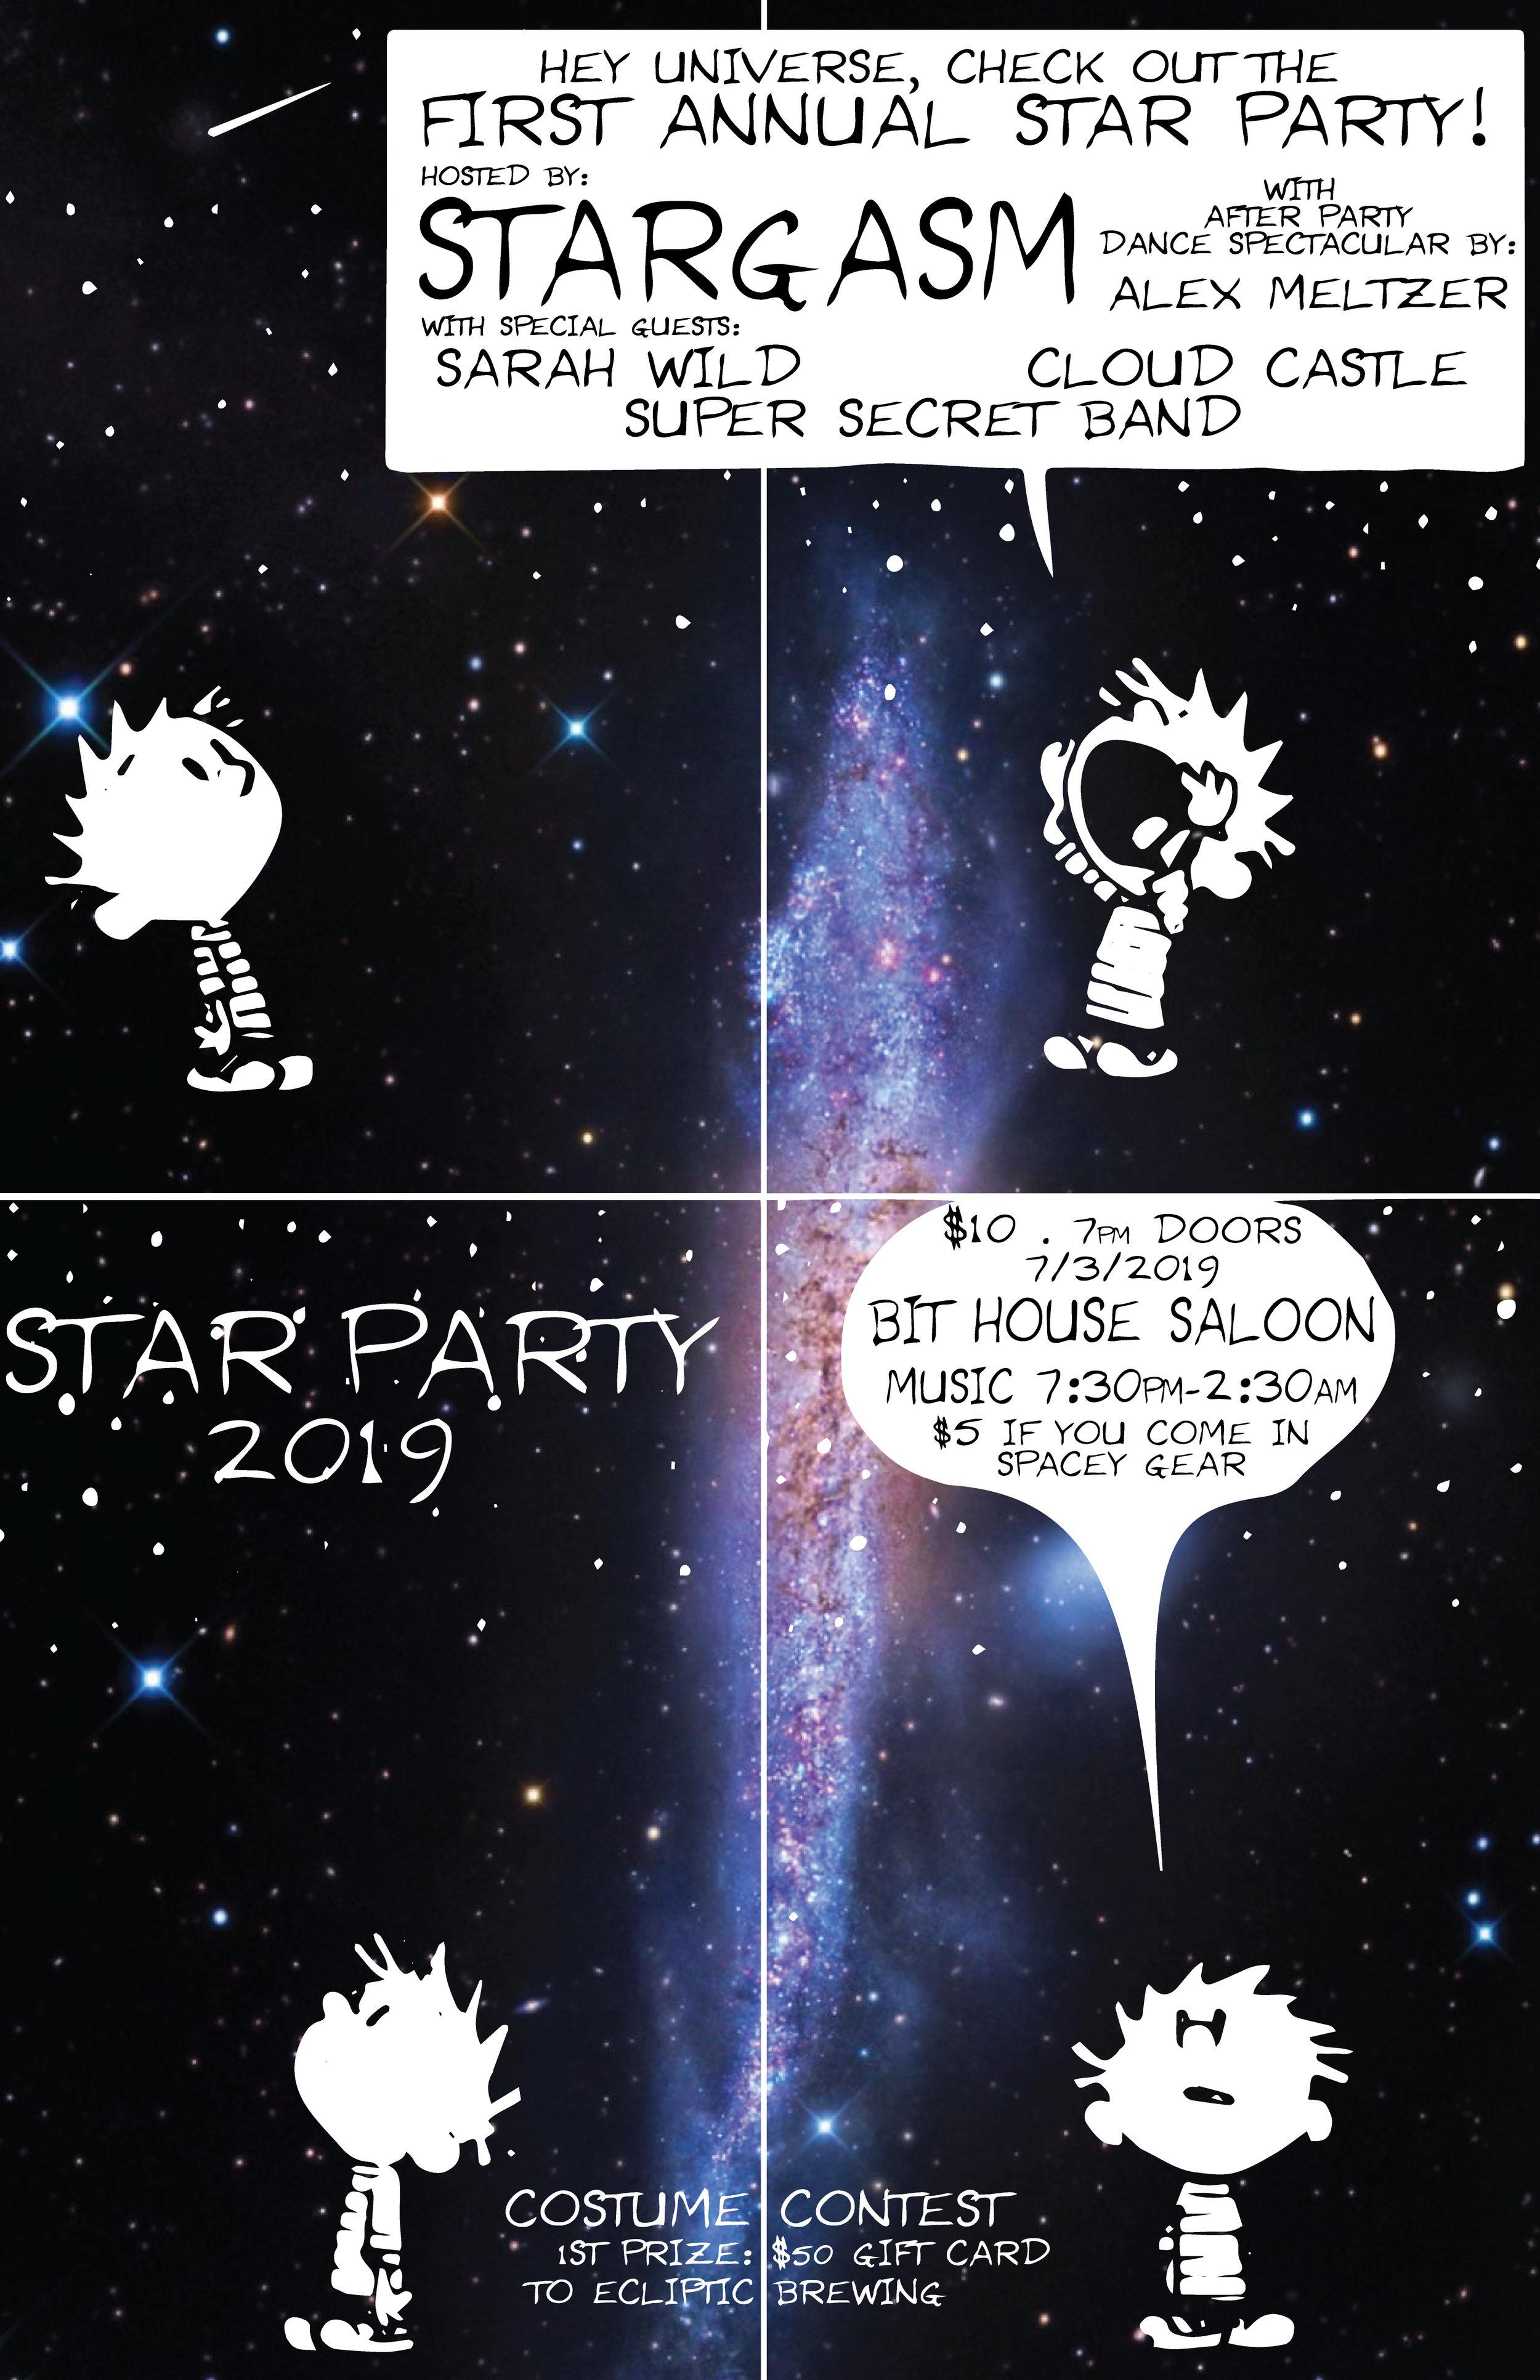 2019-03-07 - Stargasm Star Party Show Poster_11x17.png